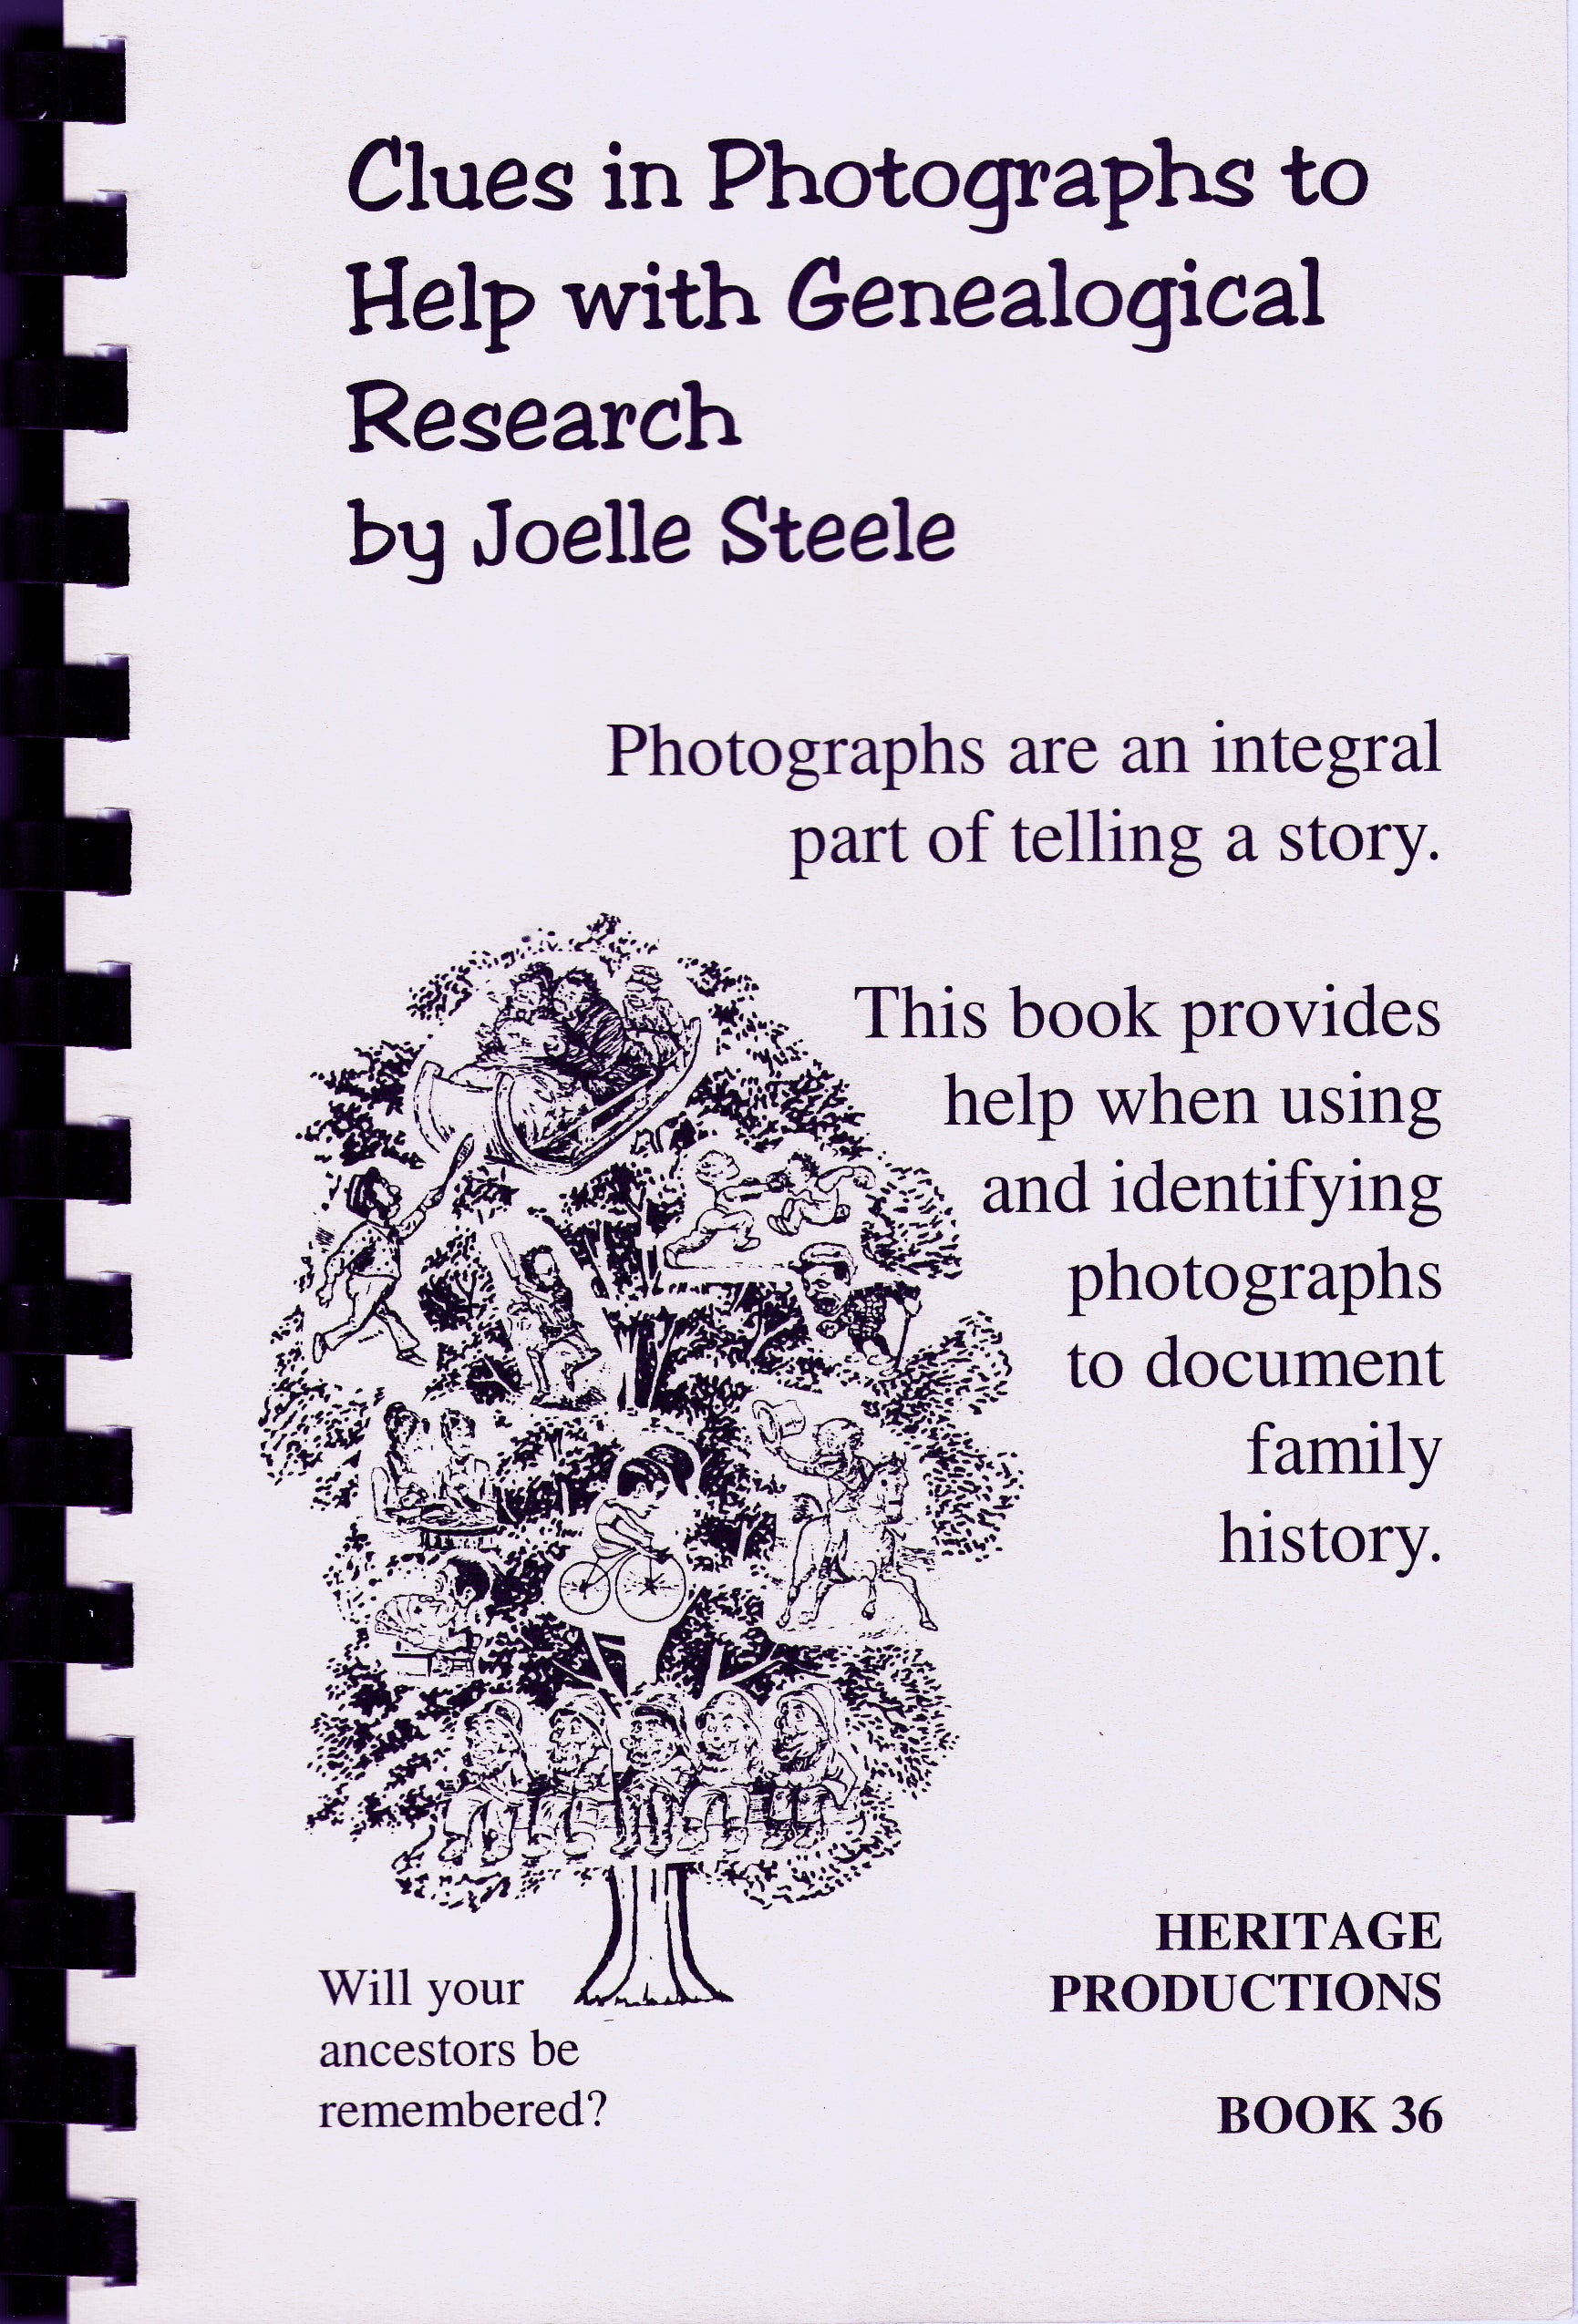 Clues in Photographs to Help with Genealogical Research